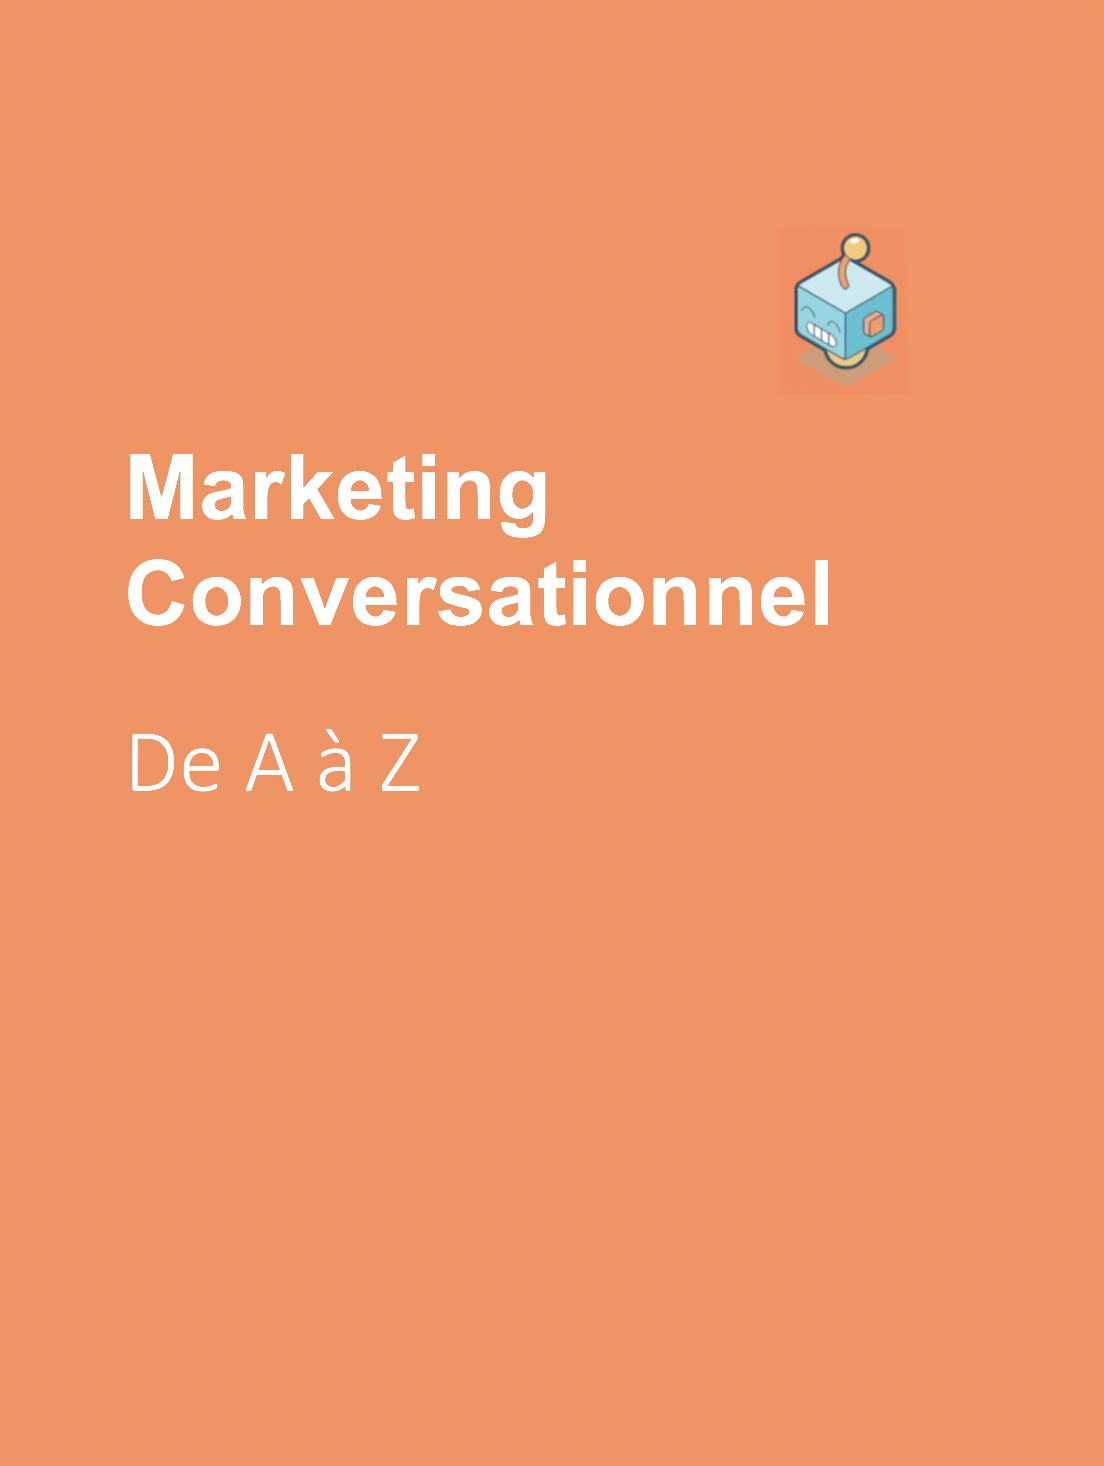 Marketing conversationnel de A à Z